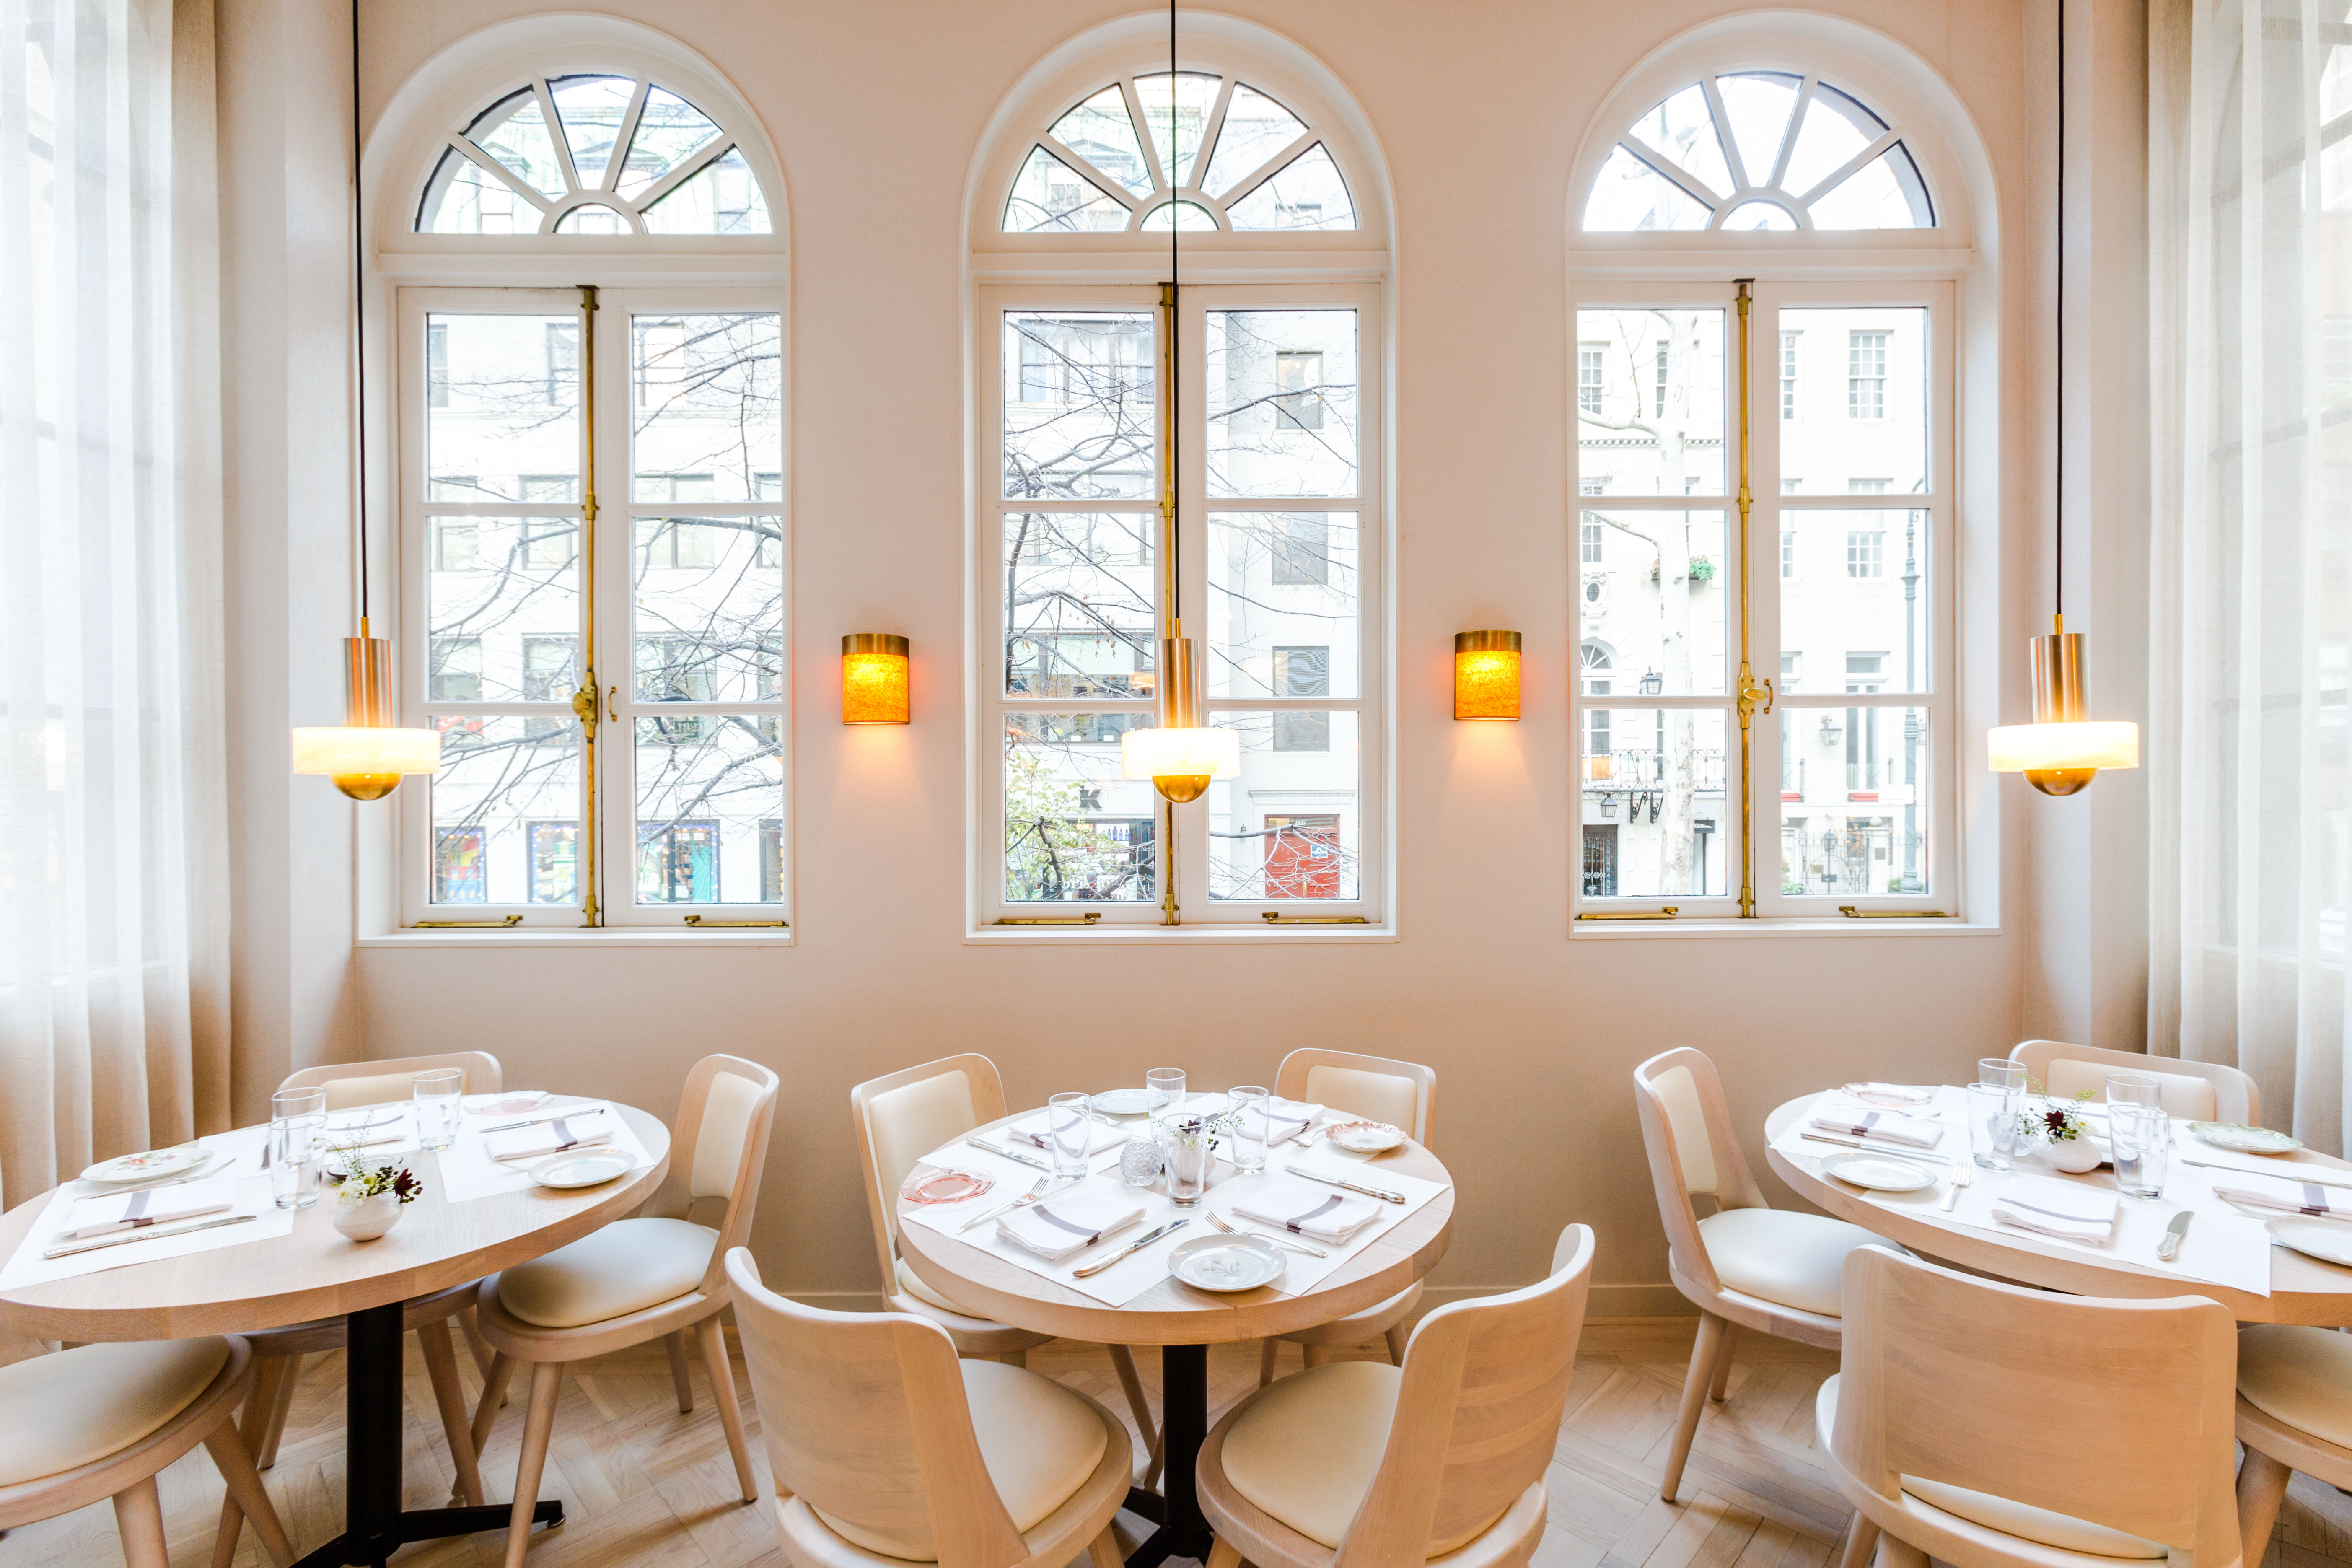 A cream-colored room with three windows and three round tables